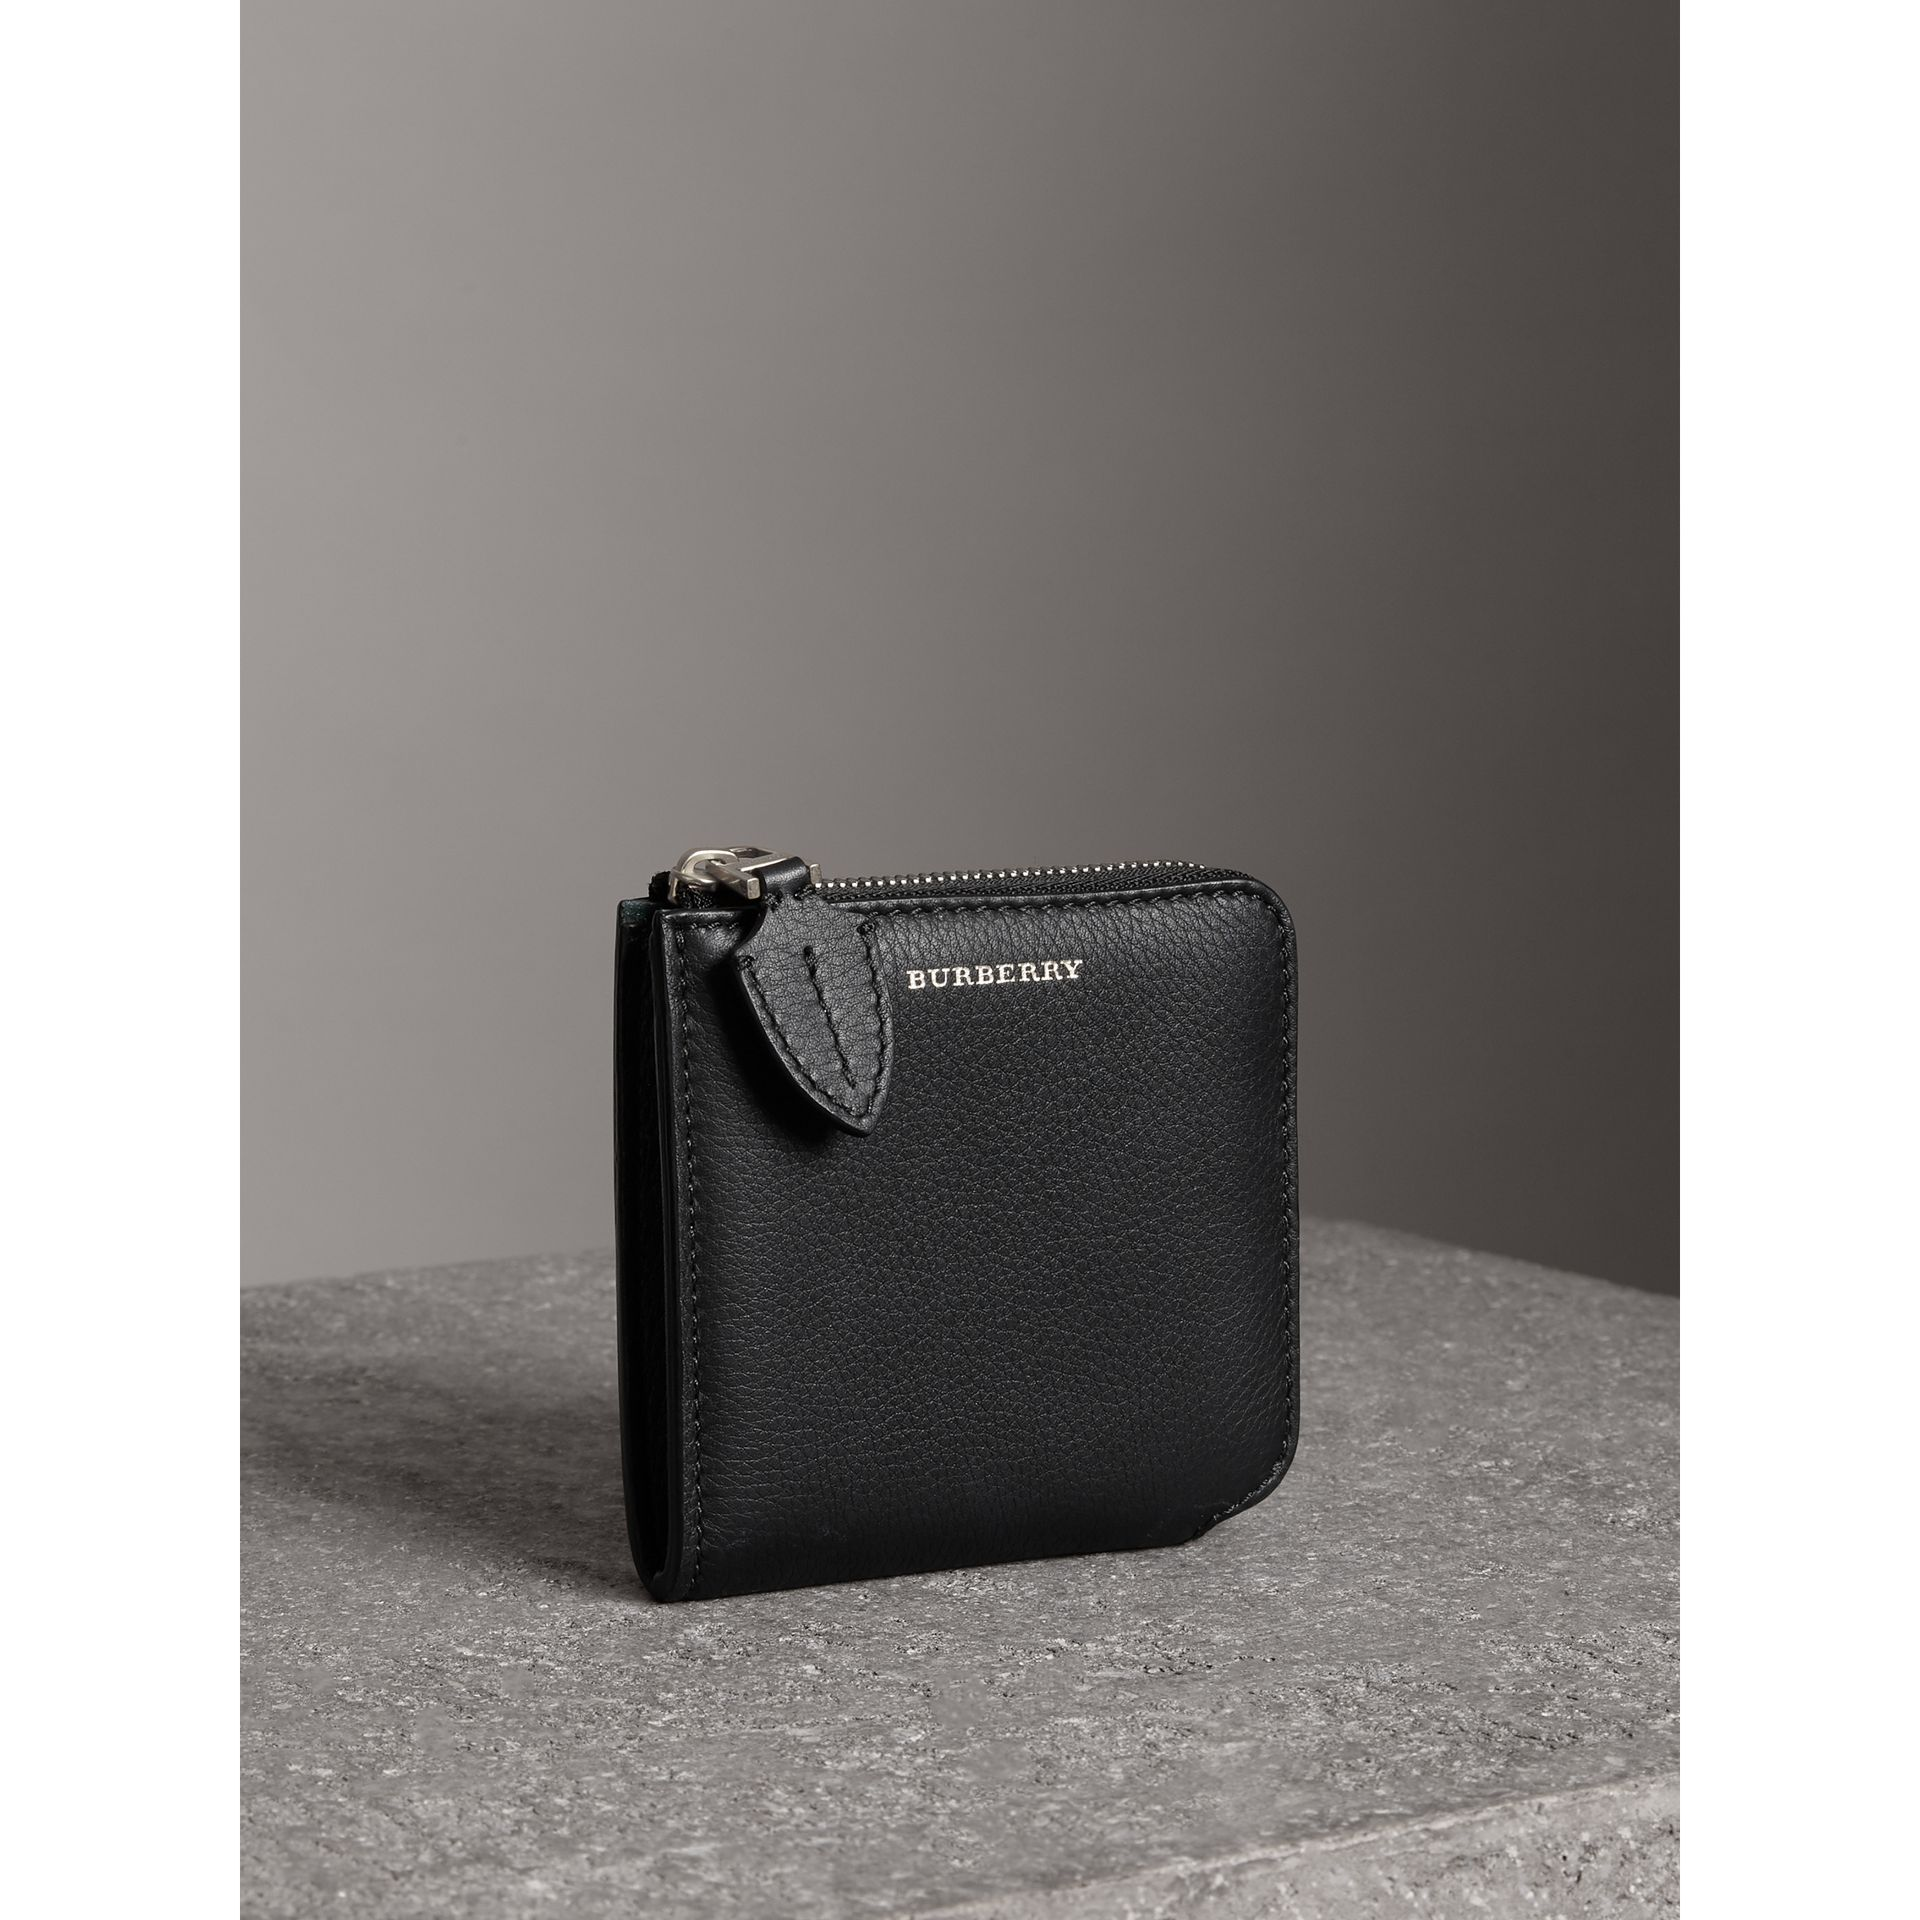 Grainy Leather Square Ziparound Wallet in Black - Women | Burberry Australia - gallery image 4